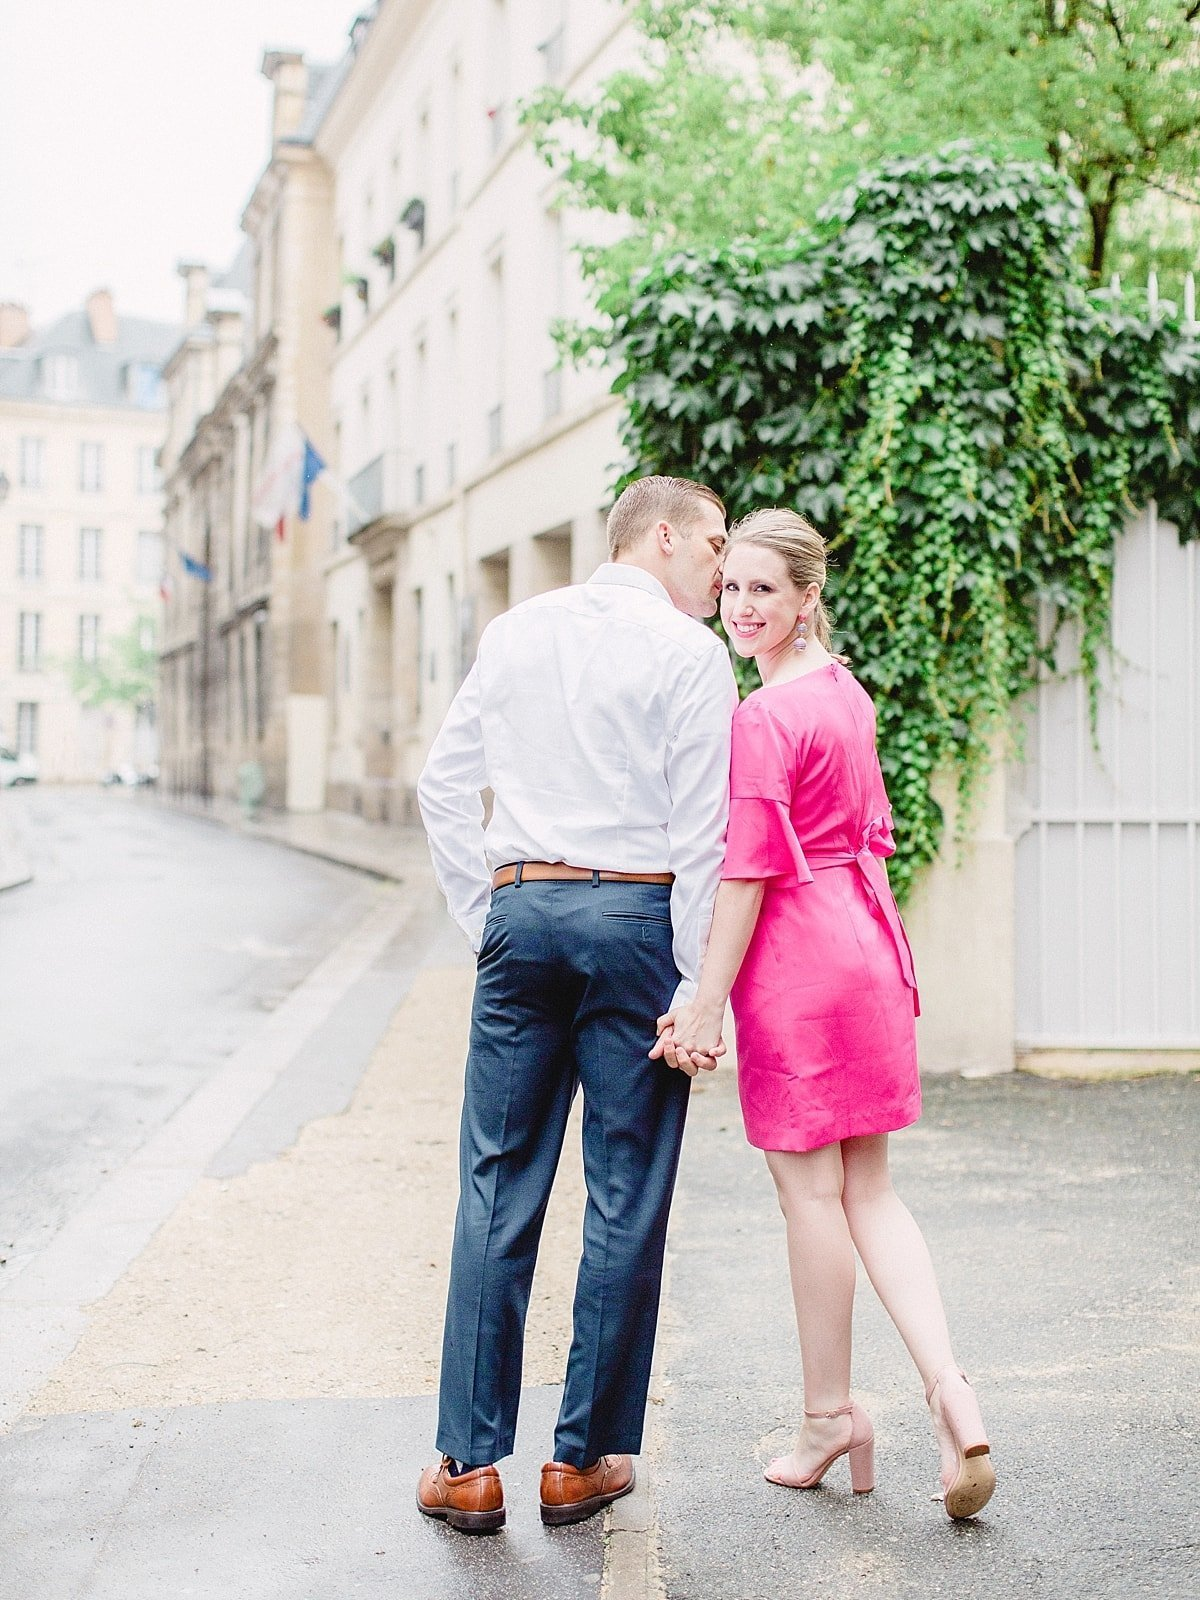 paris-photo-session-anniversary-alicia-yarrish-photography_38